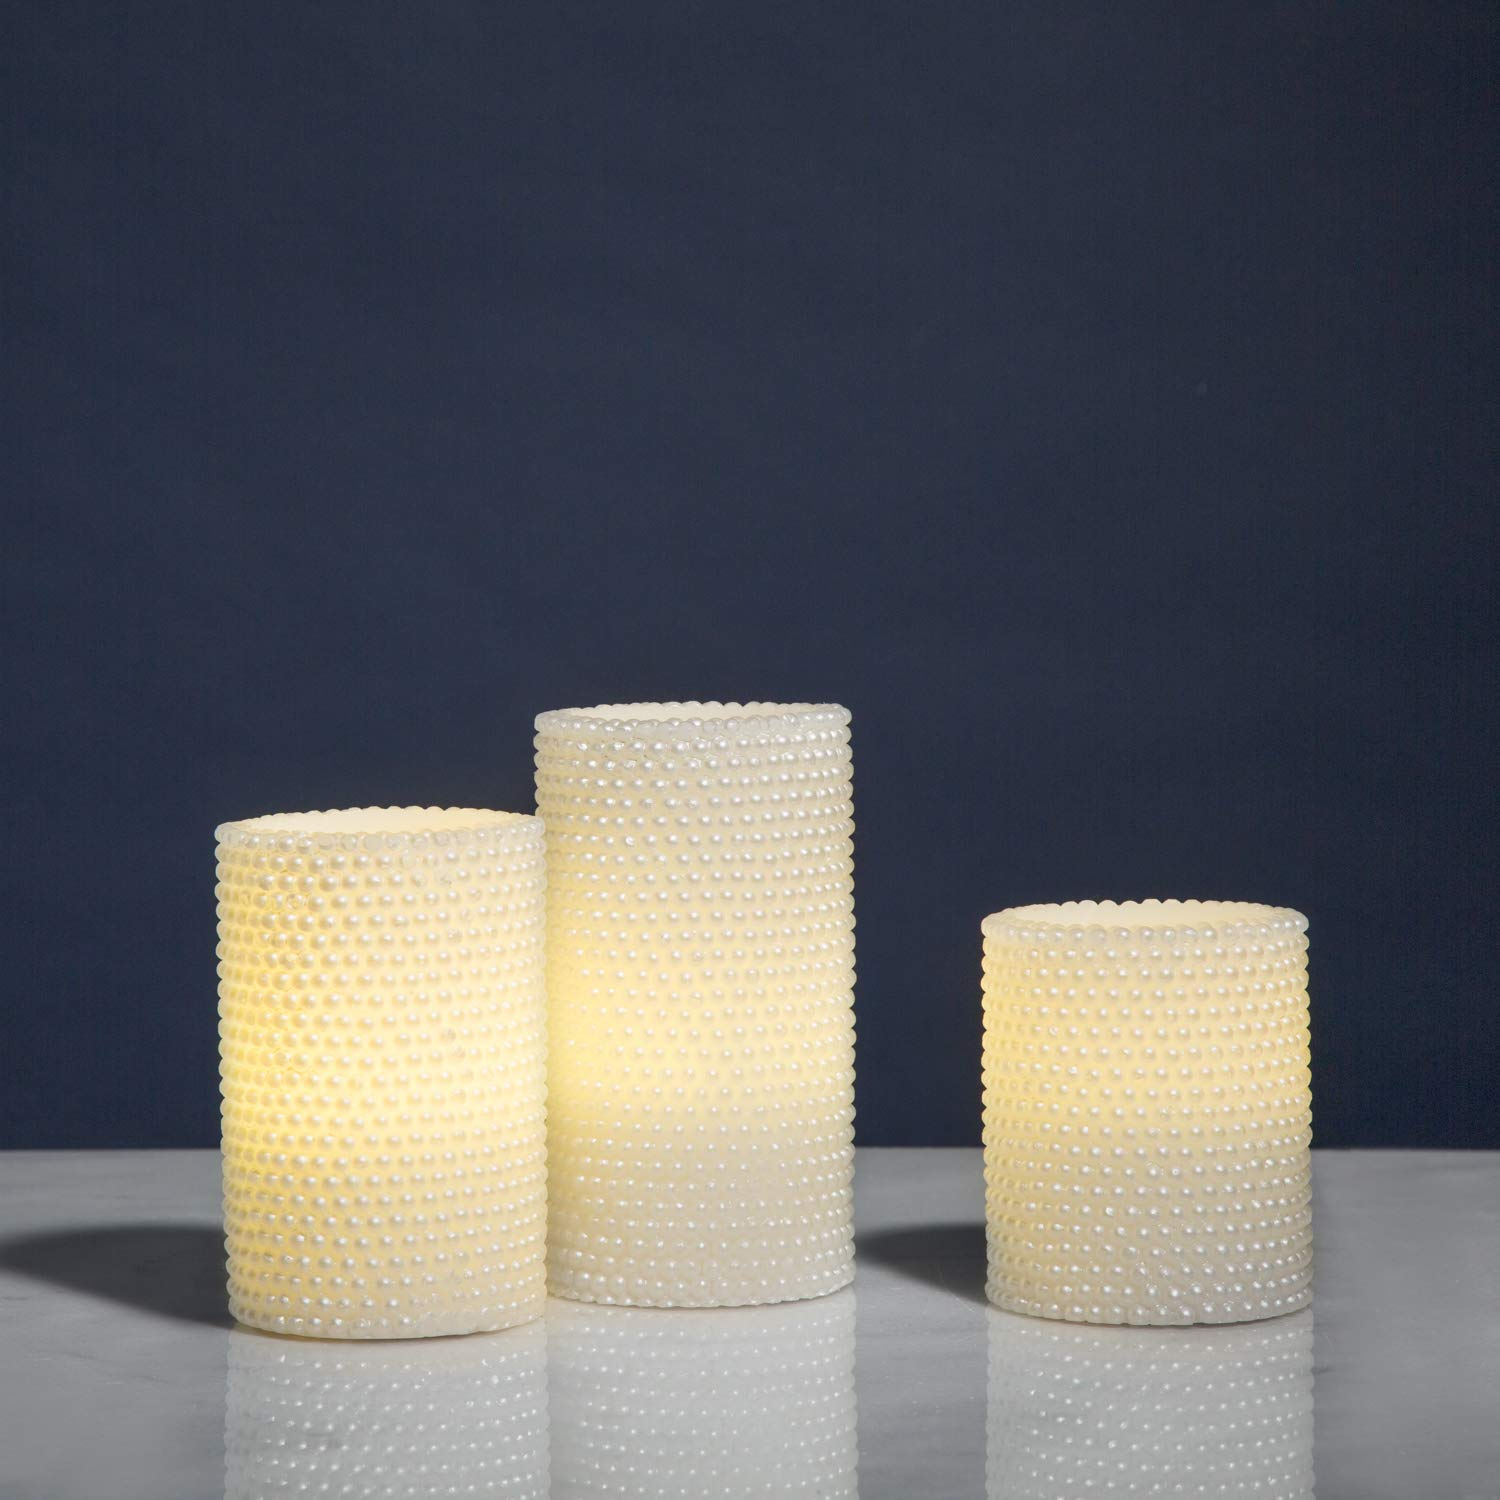 Decorative Textured Flameless Candles Set with Remote, Flickering Pearl Candle by LampLust, 4/8 Hr Timer, Real Wax, White LED Glow, Indoor use - Set of 3 by LampLust (Image #5)